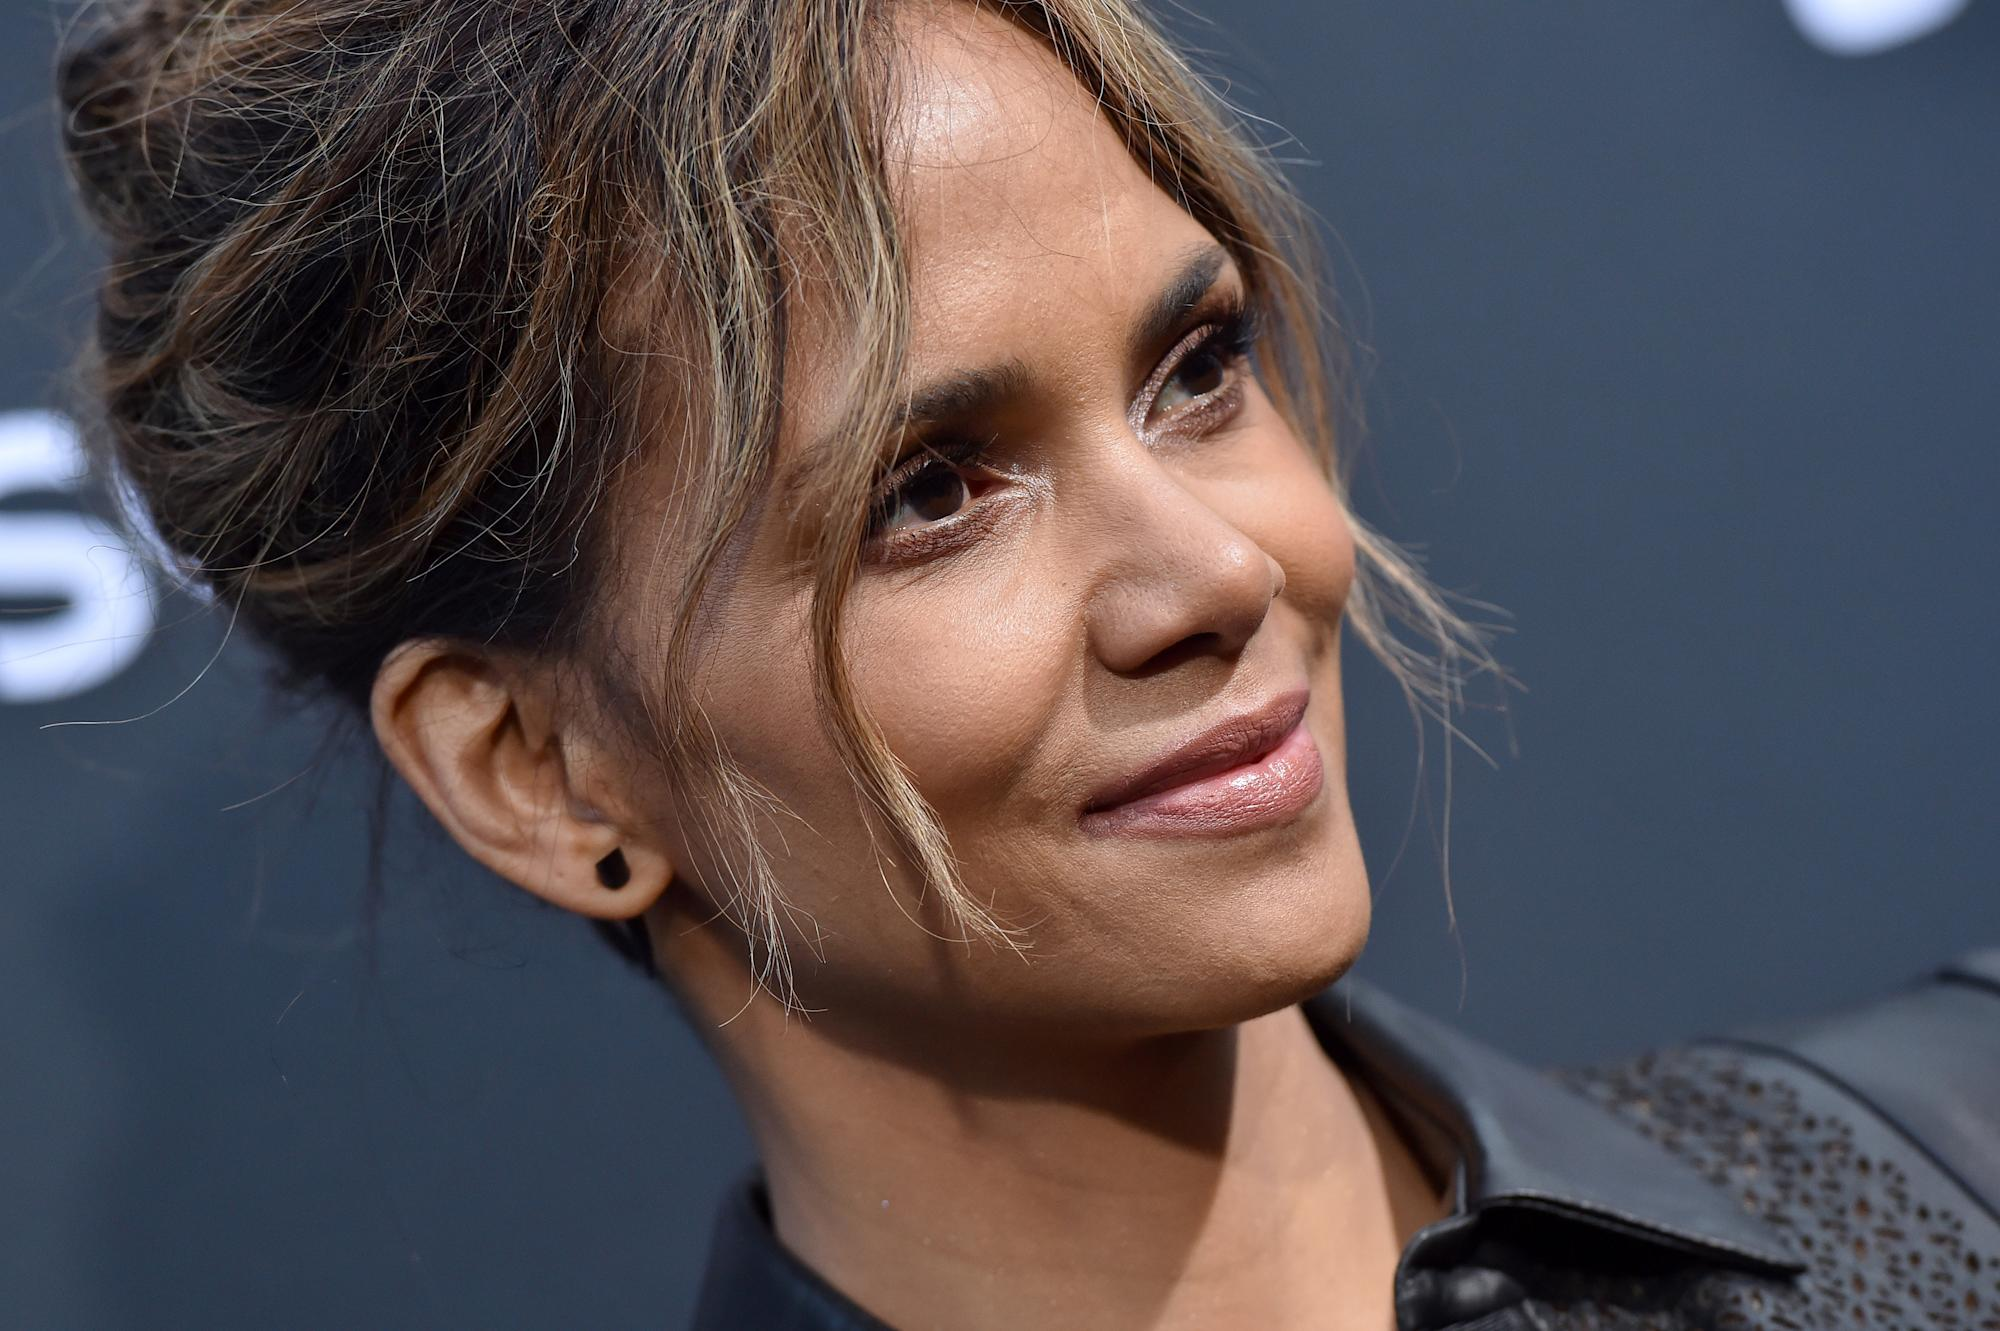 Halle Berry, 54, dances in nothing but heart-print briefs to celebrate Valentine's Day with boyfriend Van Hunt - Yahoo Lifestyle